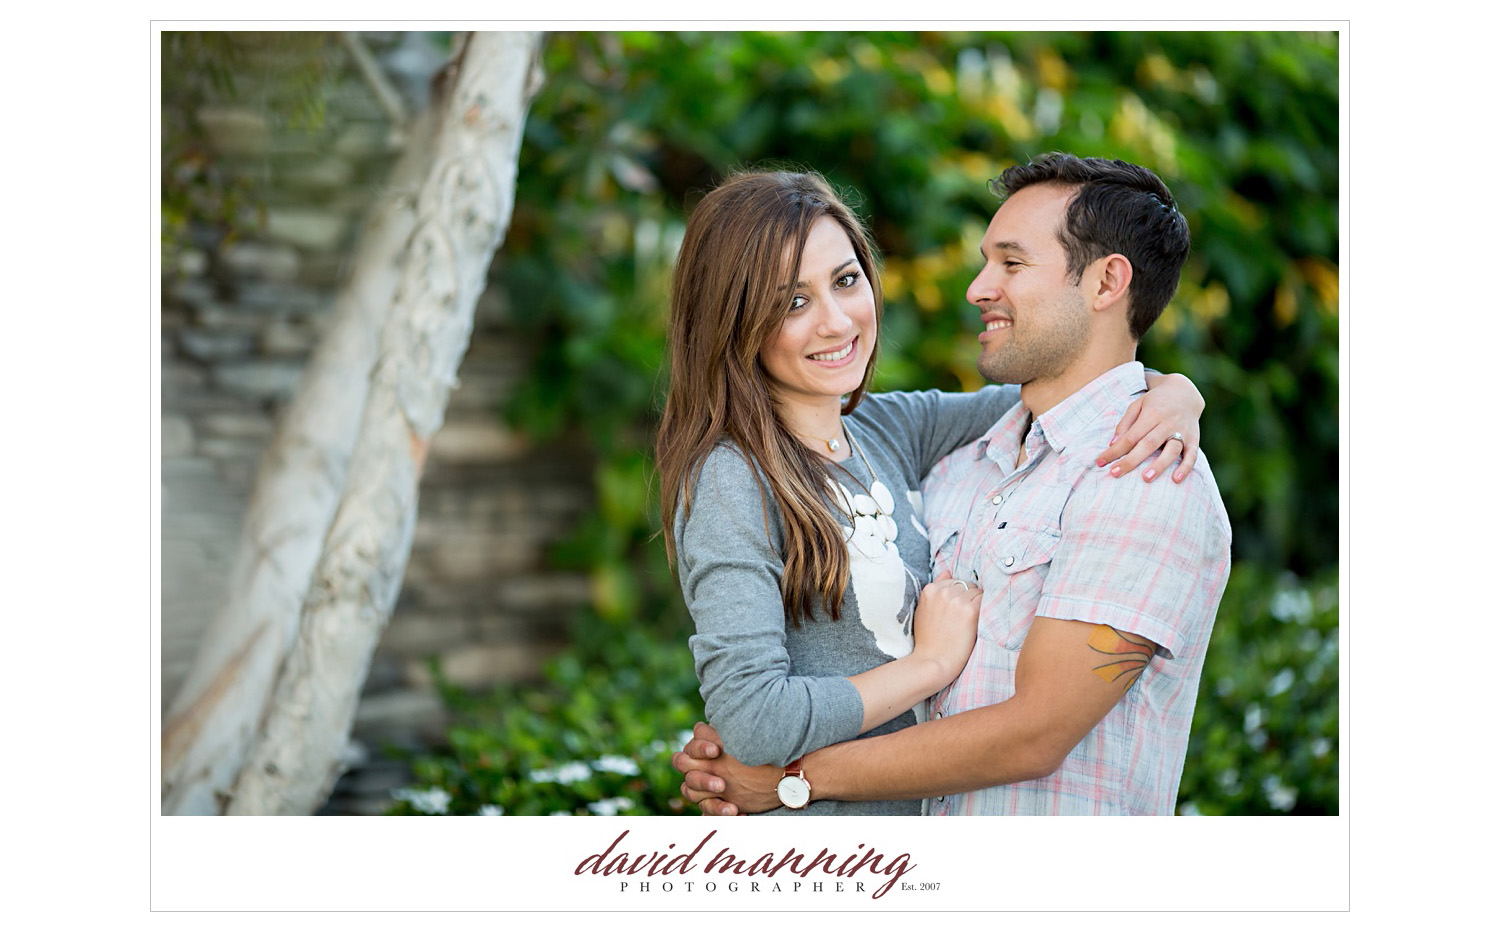 Encinitas-Engagement-Photos-San-Diego-David-Manning_0014.jpg